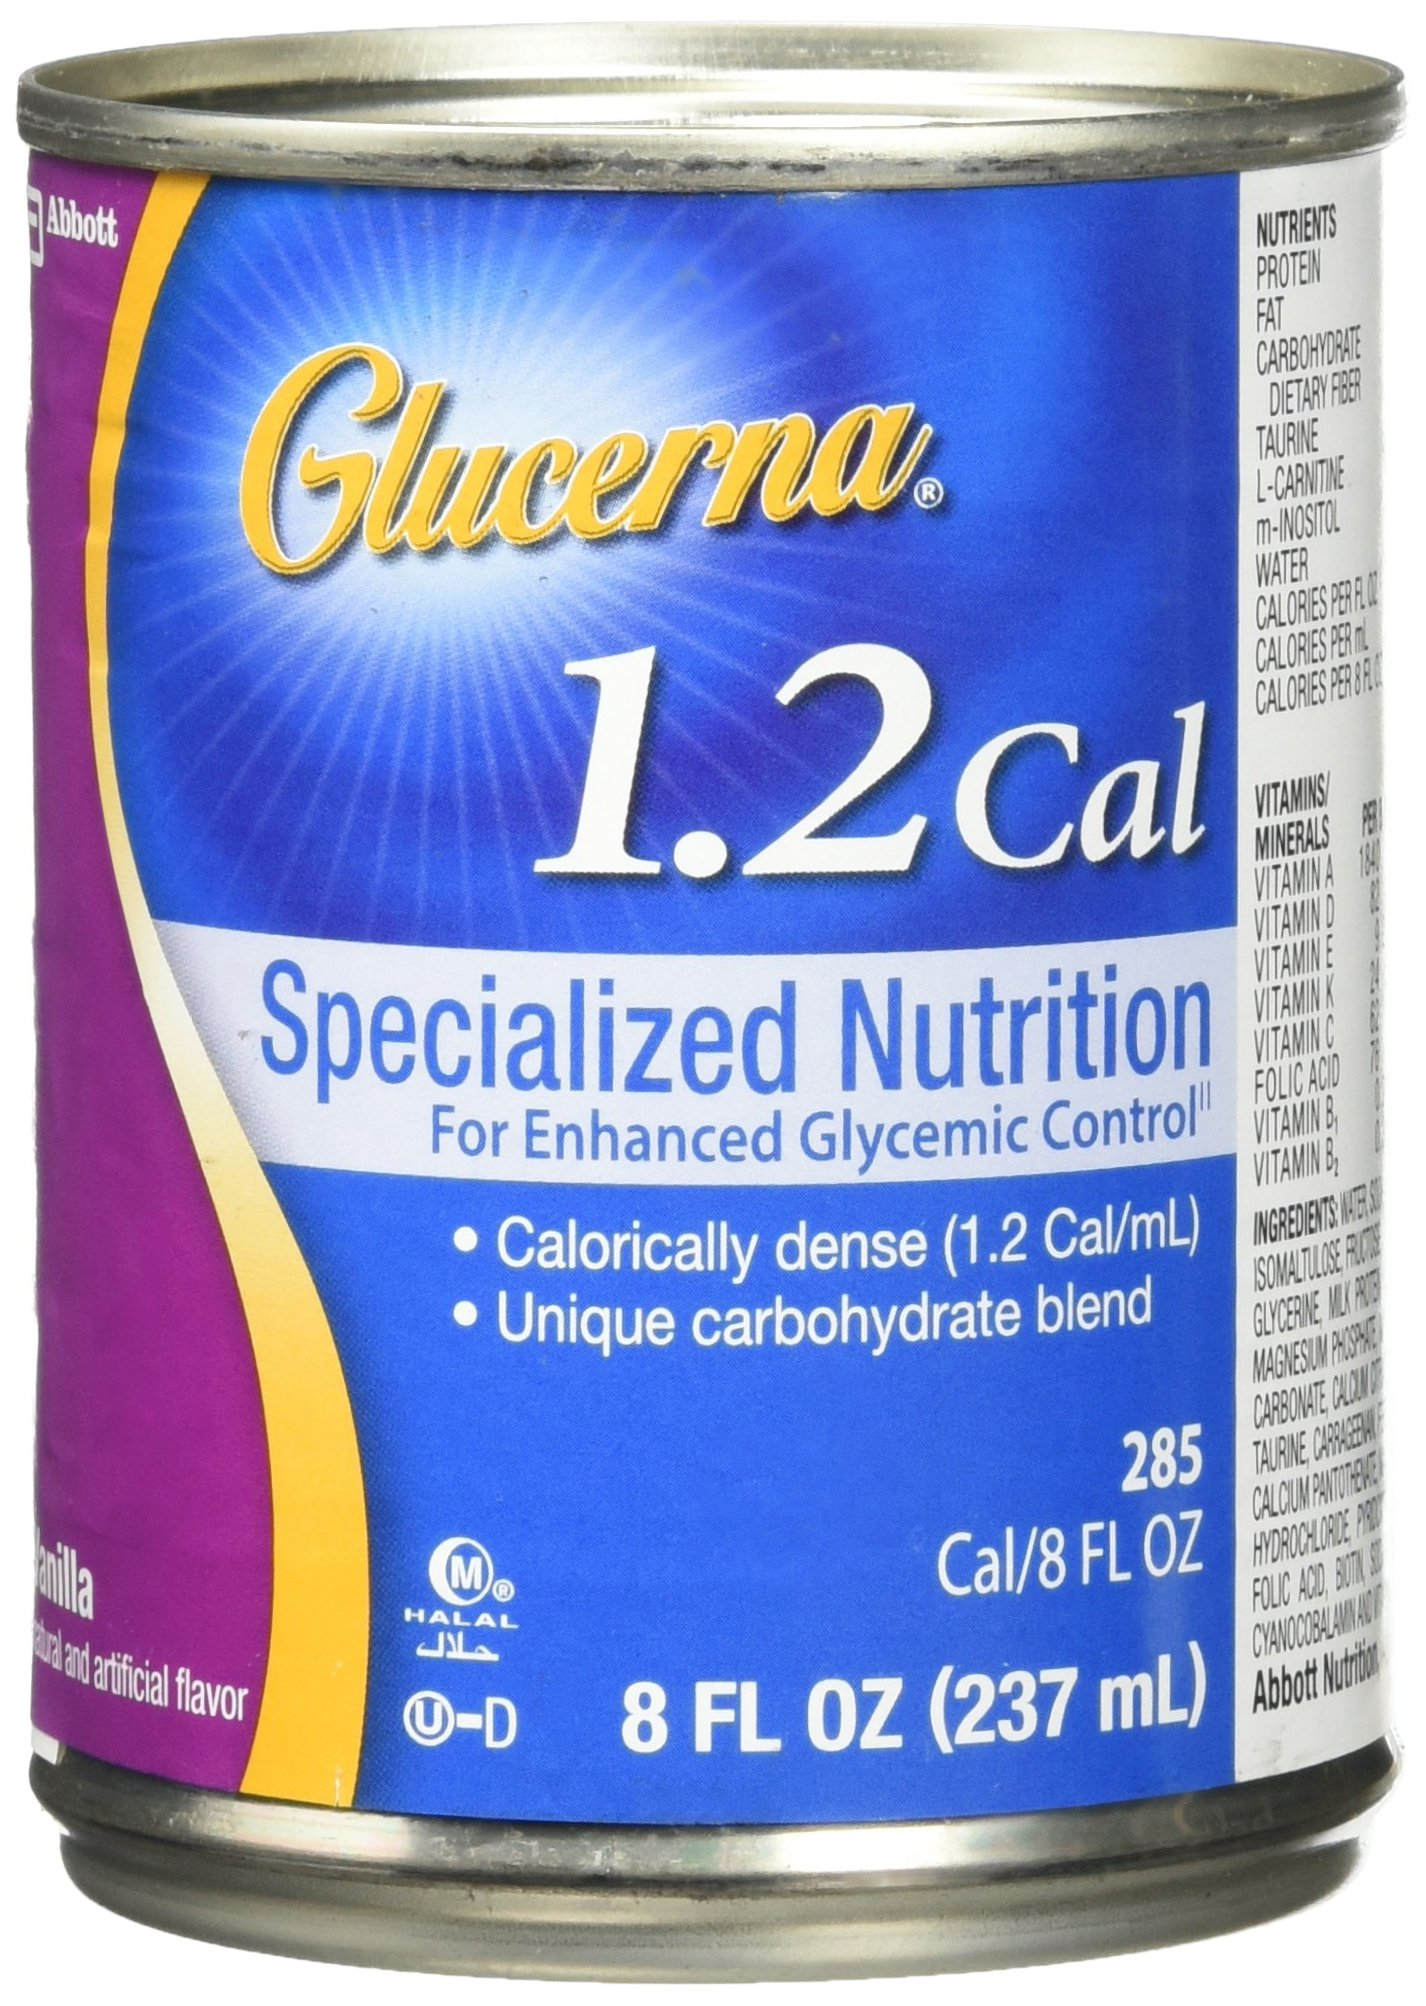 Glucerna 1.2 Cal Specialized Nutrition For Patients With Abnormal Glucose Tolerance Ready To Use, 24 - 8 Oz. Cans